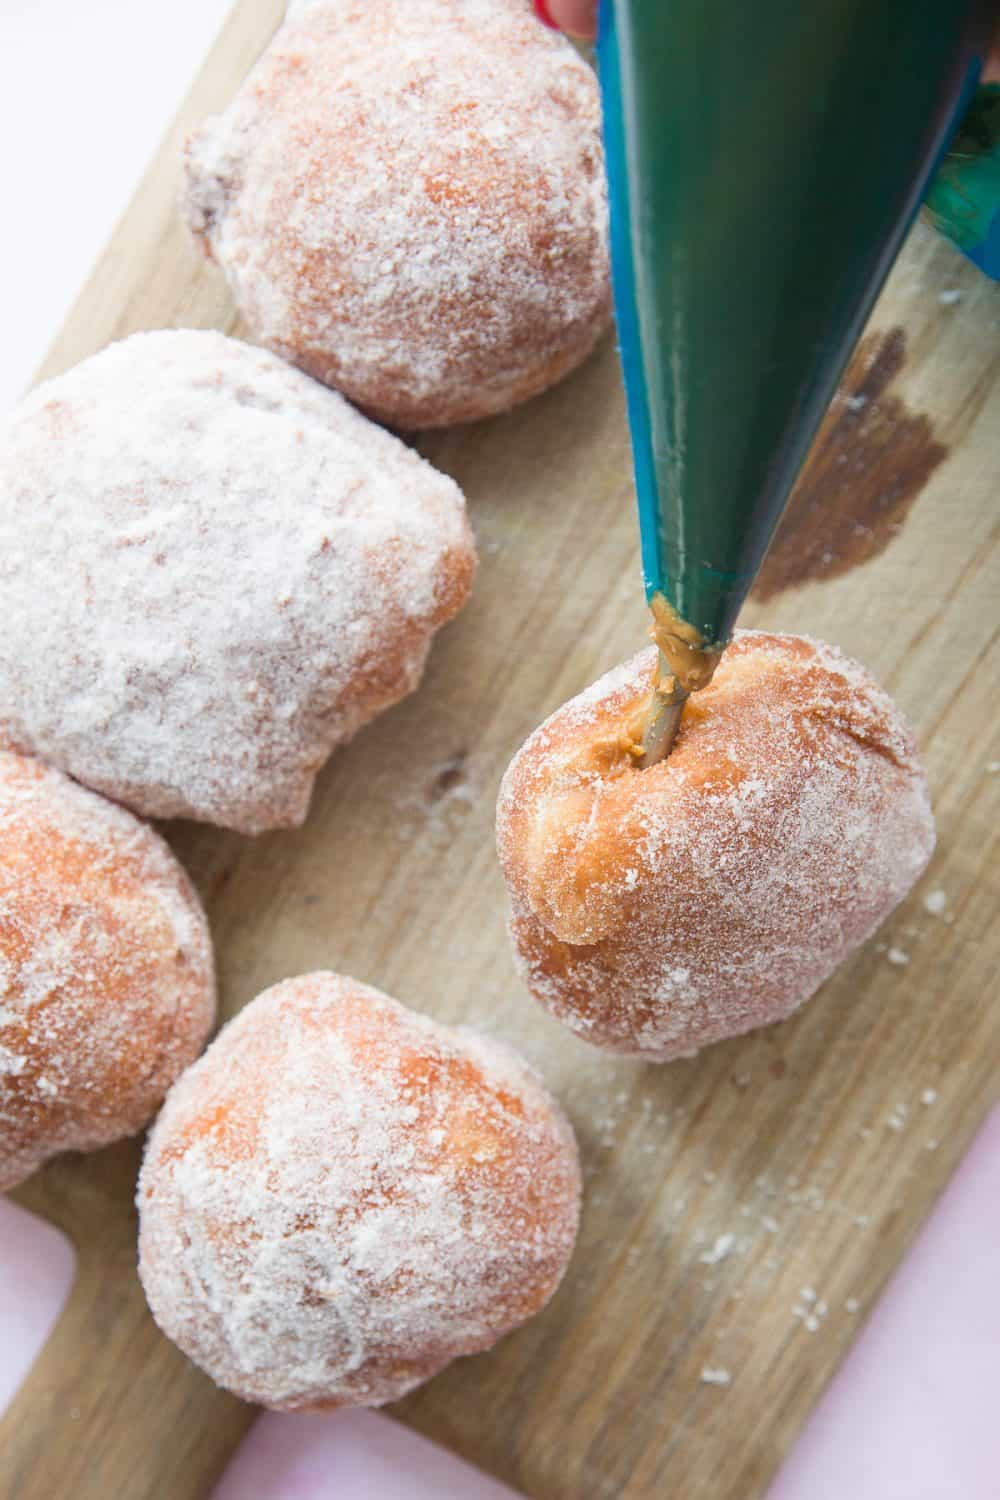 A piping bag fitted with a doughnut nozzle, filling a freshly made doughnut.